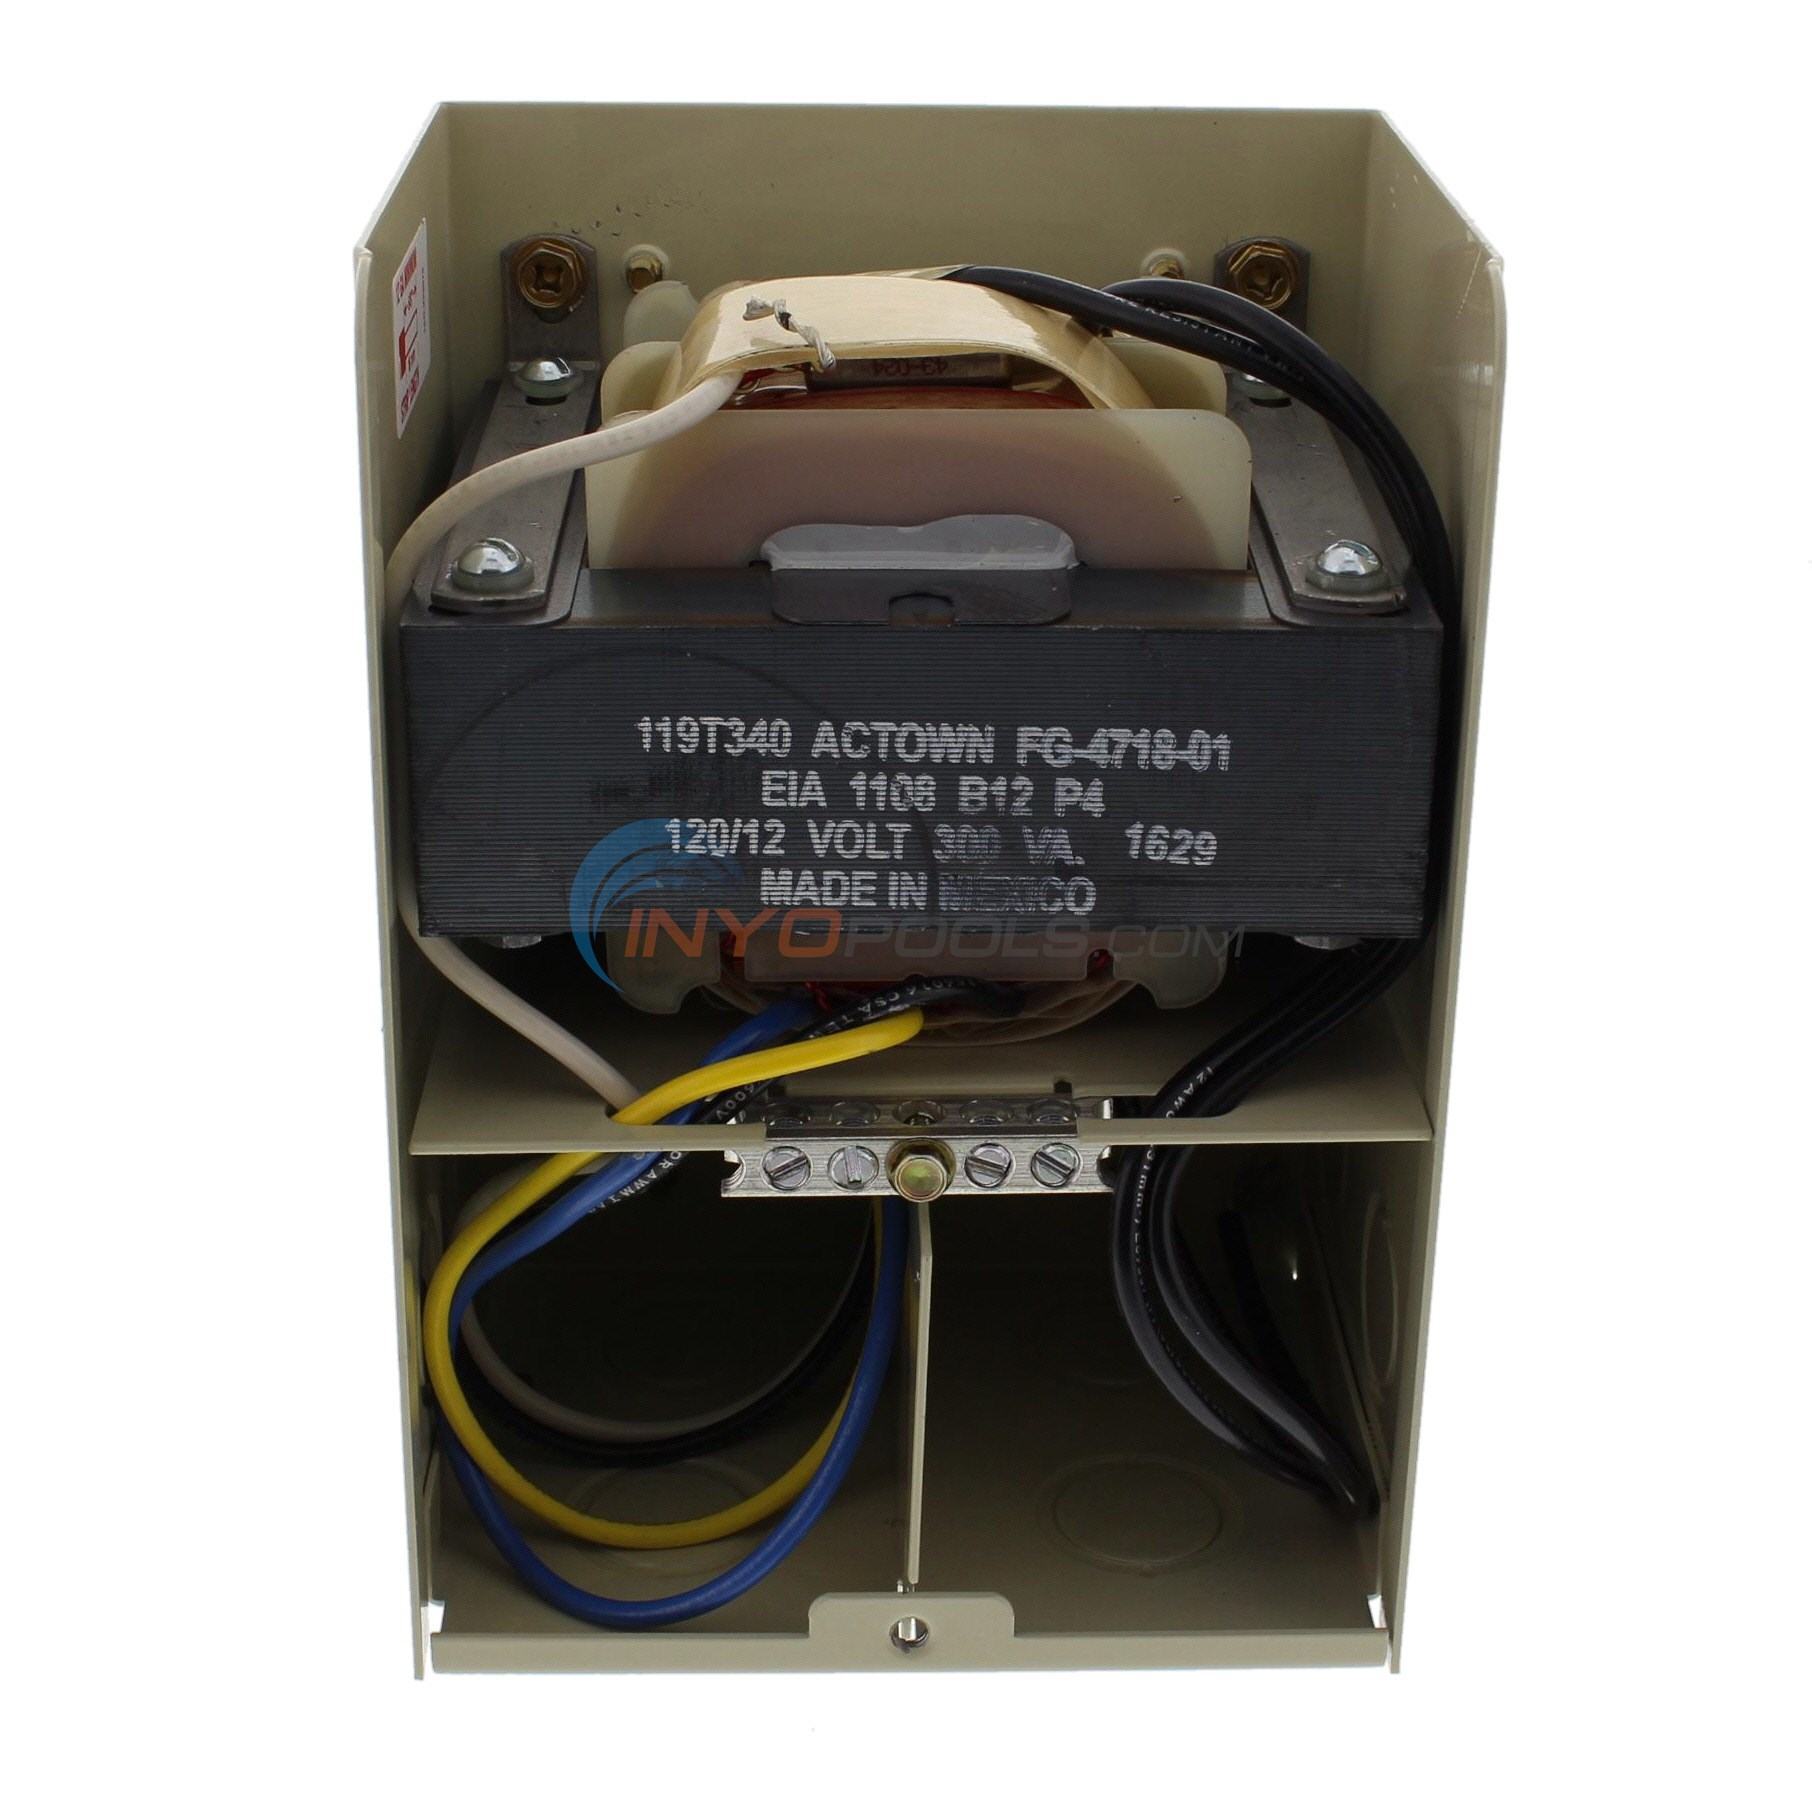 px30007?format=jpg&scale=both&anchor=middlecenter&autorotate=true&mode=pad&width=650&height=650 intermatic 300 watt transformer px300 inyopools com intermatic px100 wiring diagram at webbmarketing.co